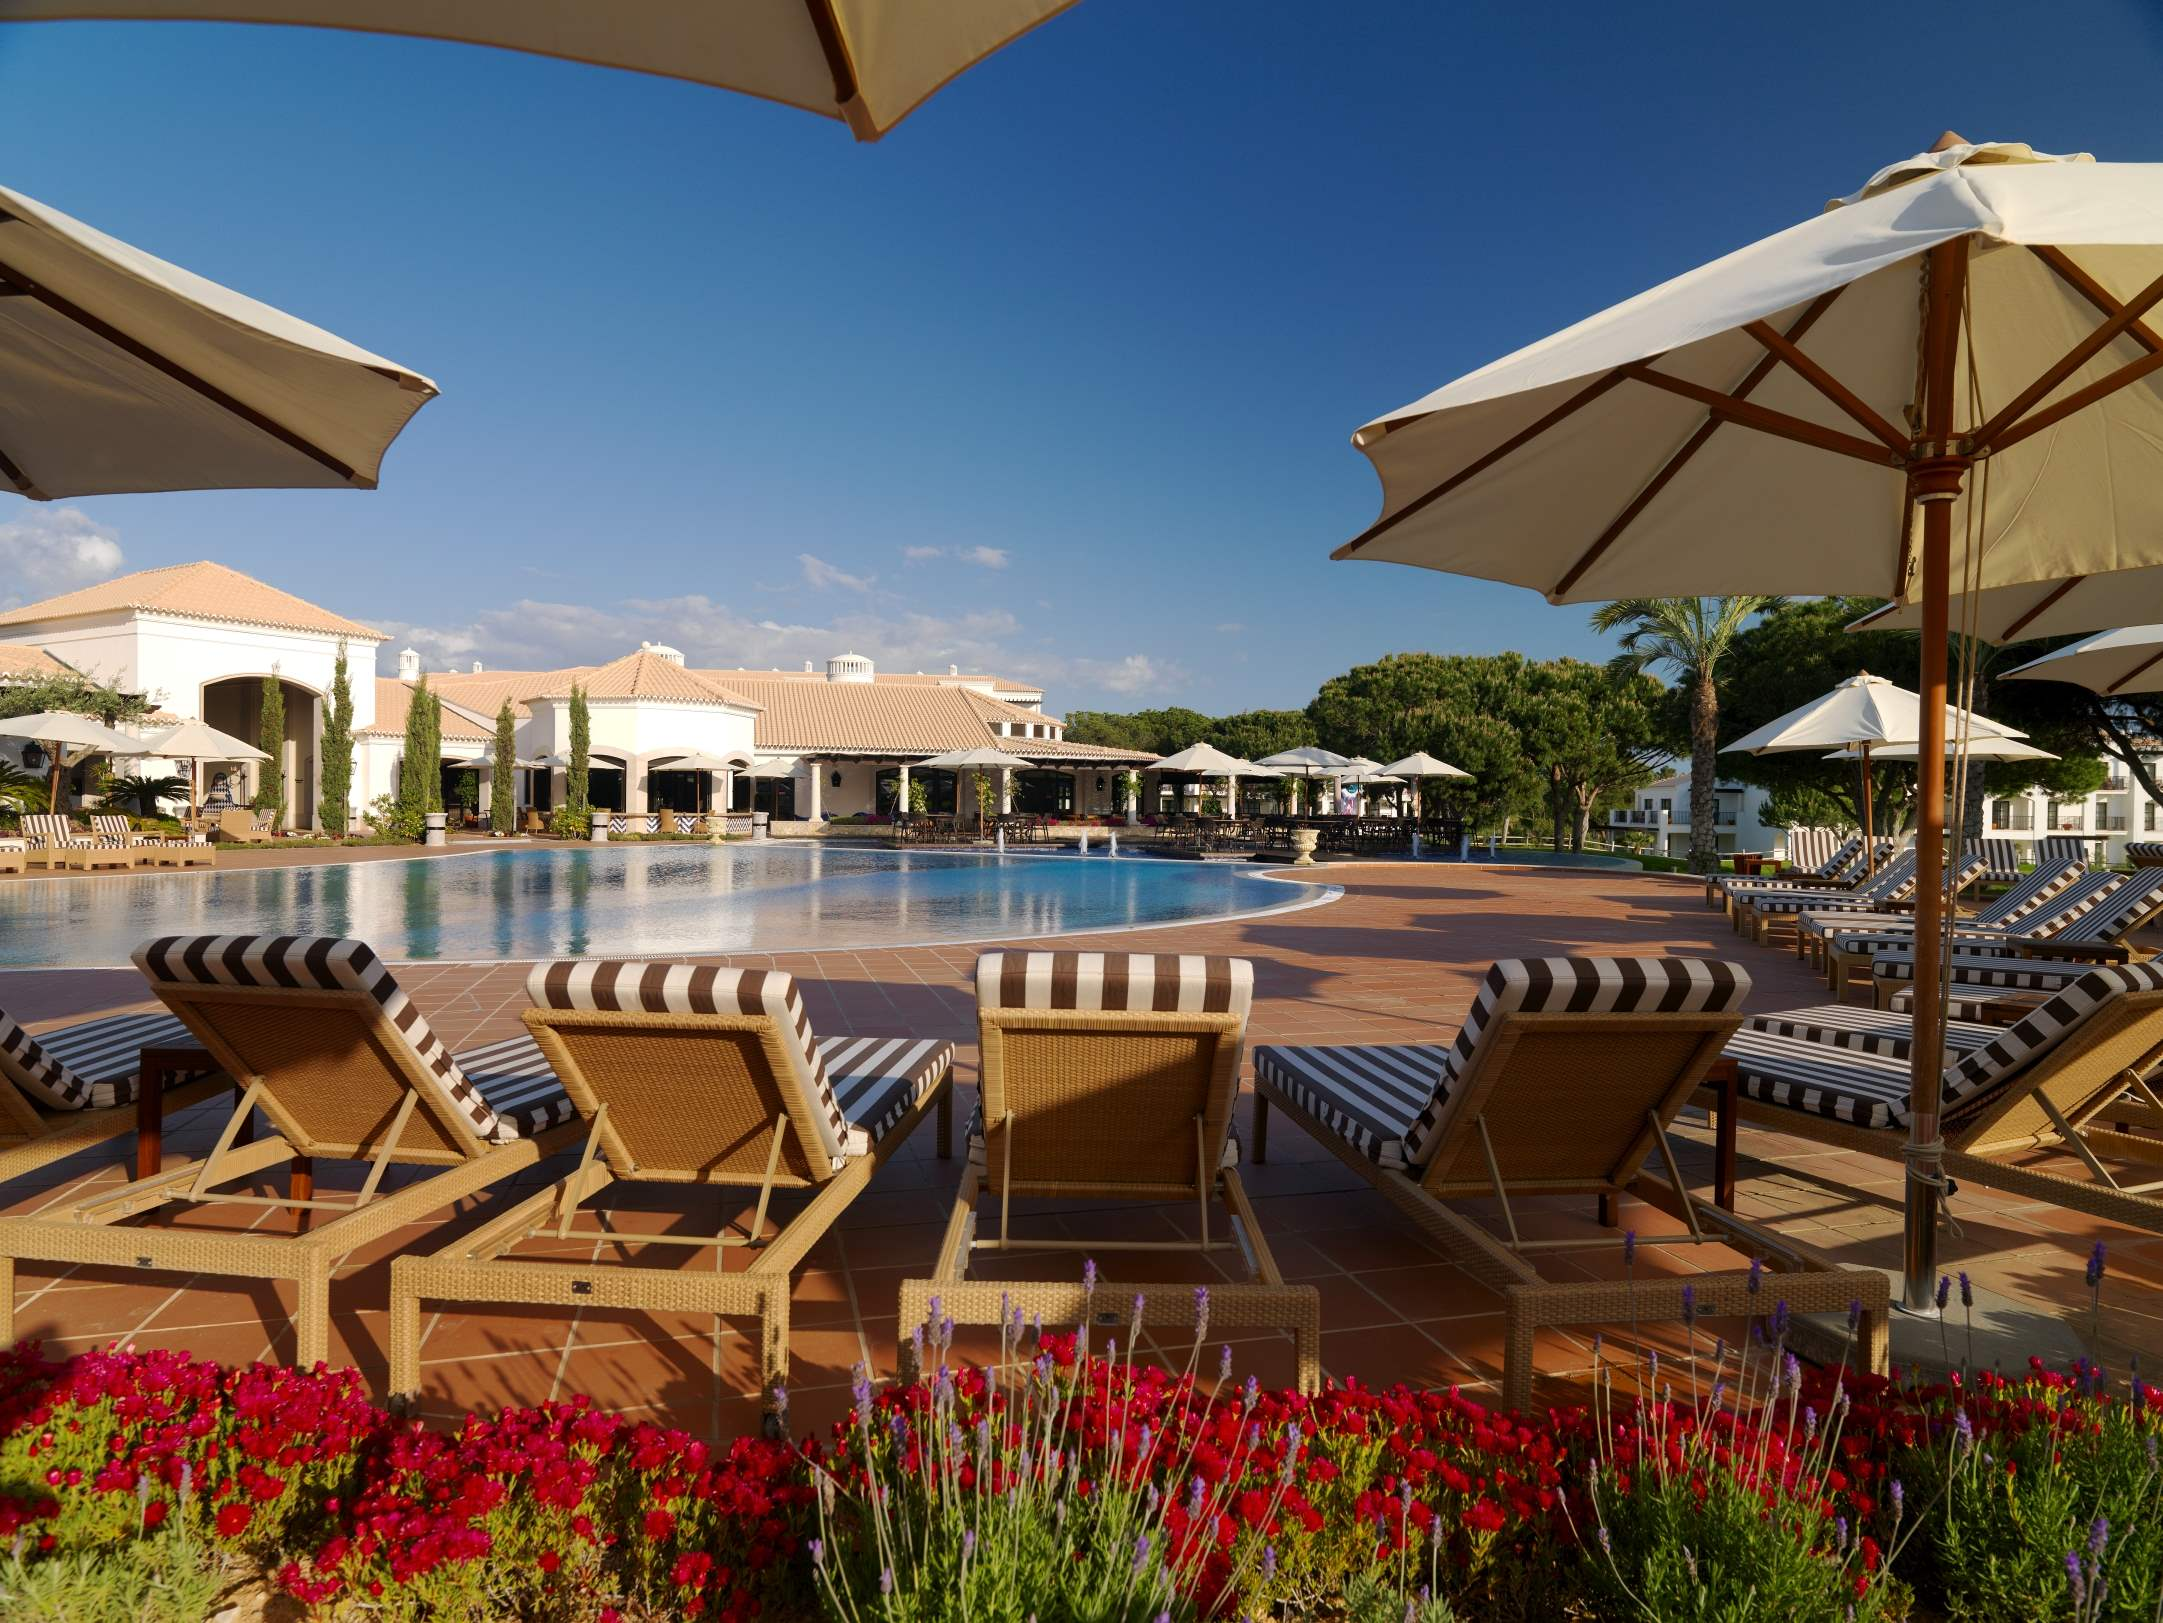 Pine Cliffs Gardens, One Bedroom Suite, S/C Basis, 1 bedroom apartment in Pine Cliffs Resort, Algarve Photo #35